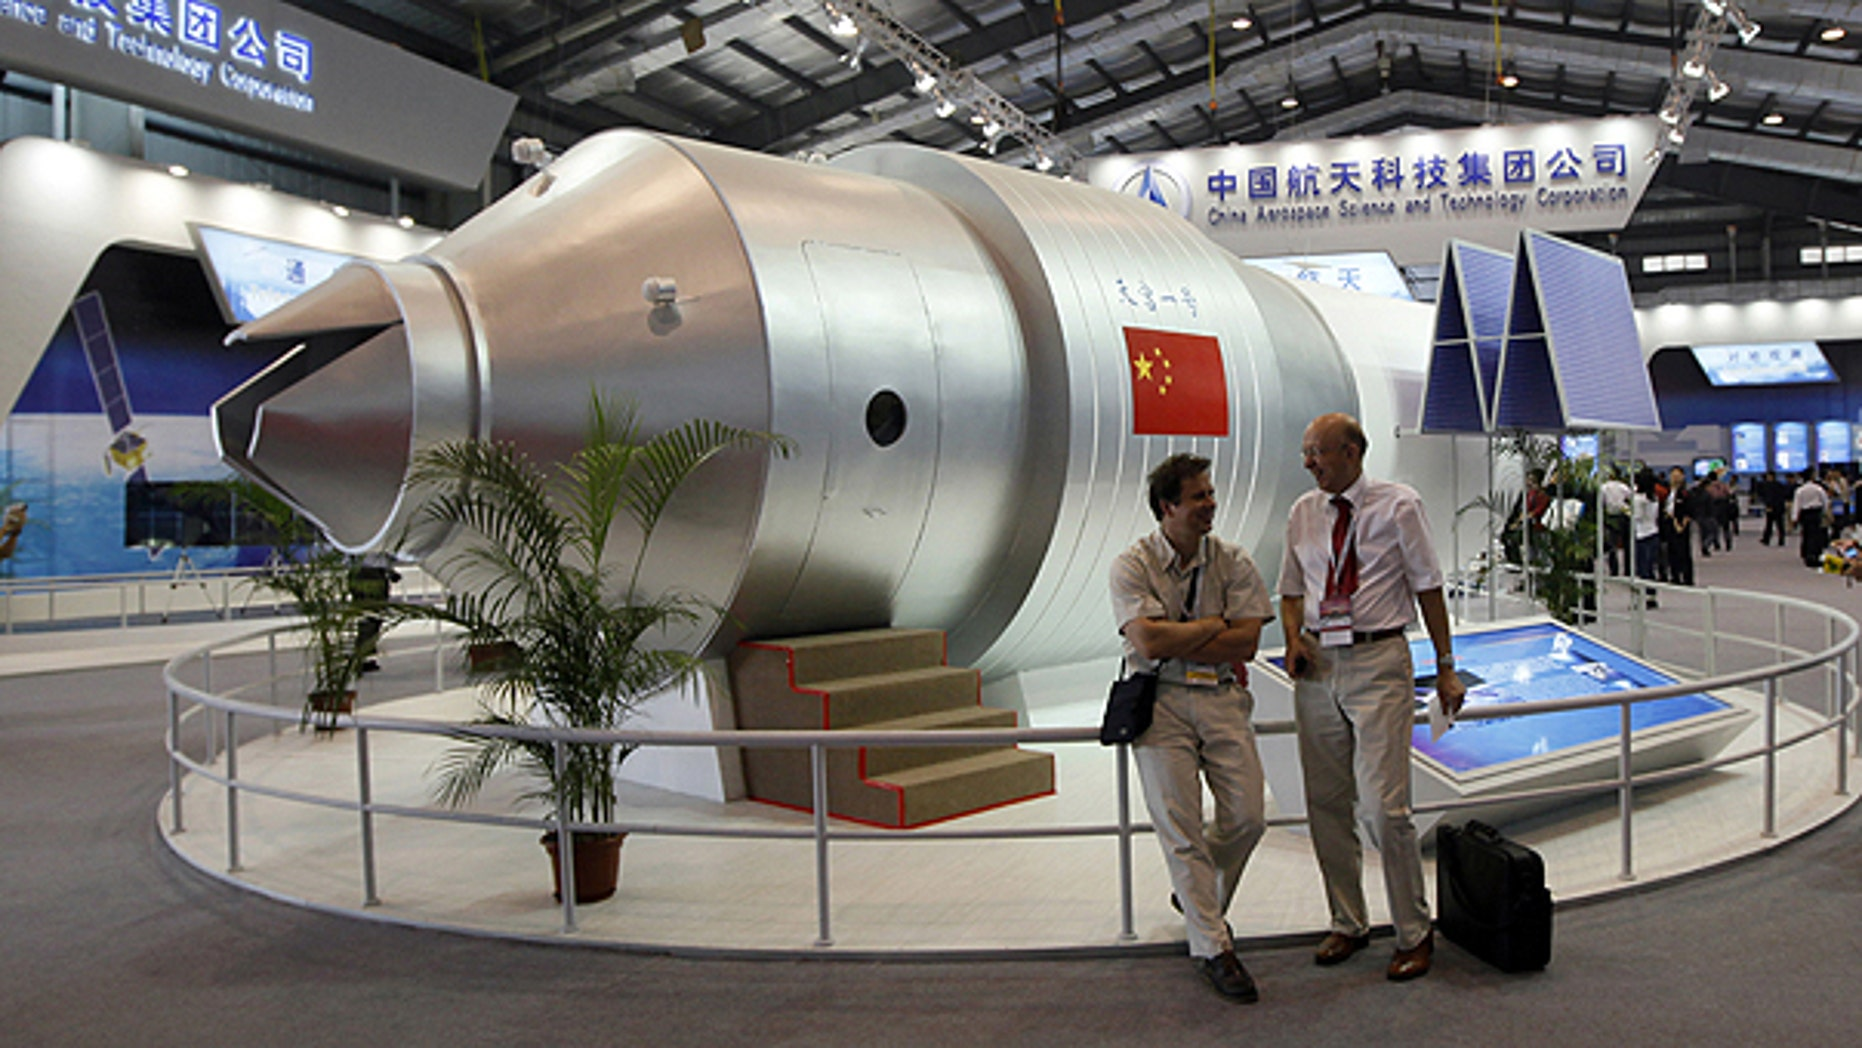 chinese space shuttle program - photo #7